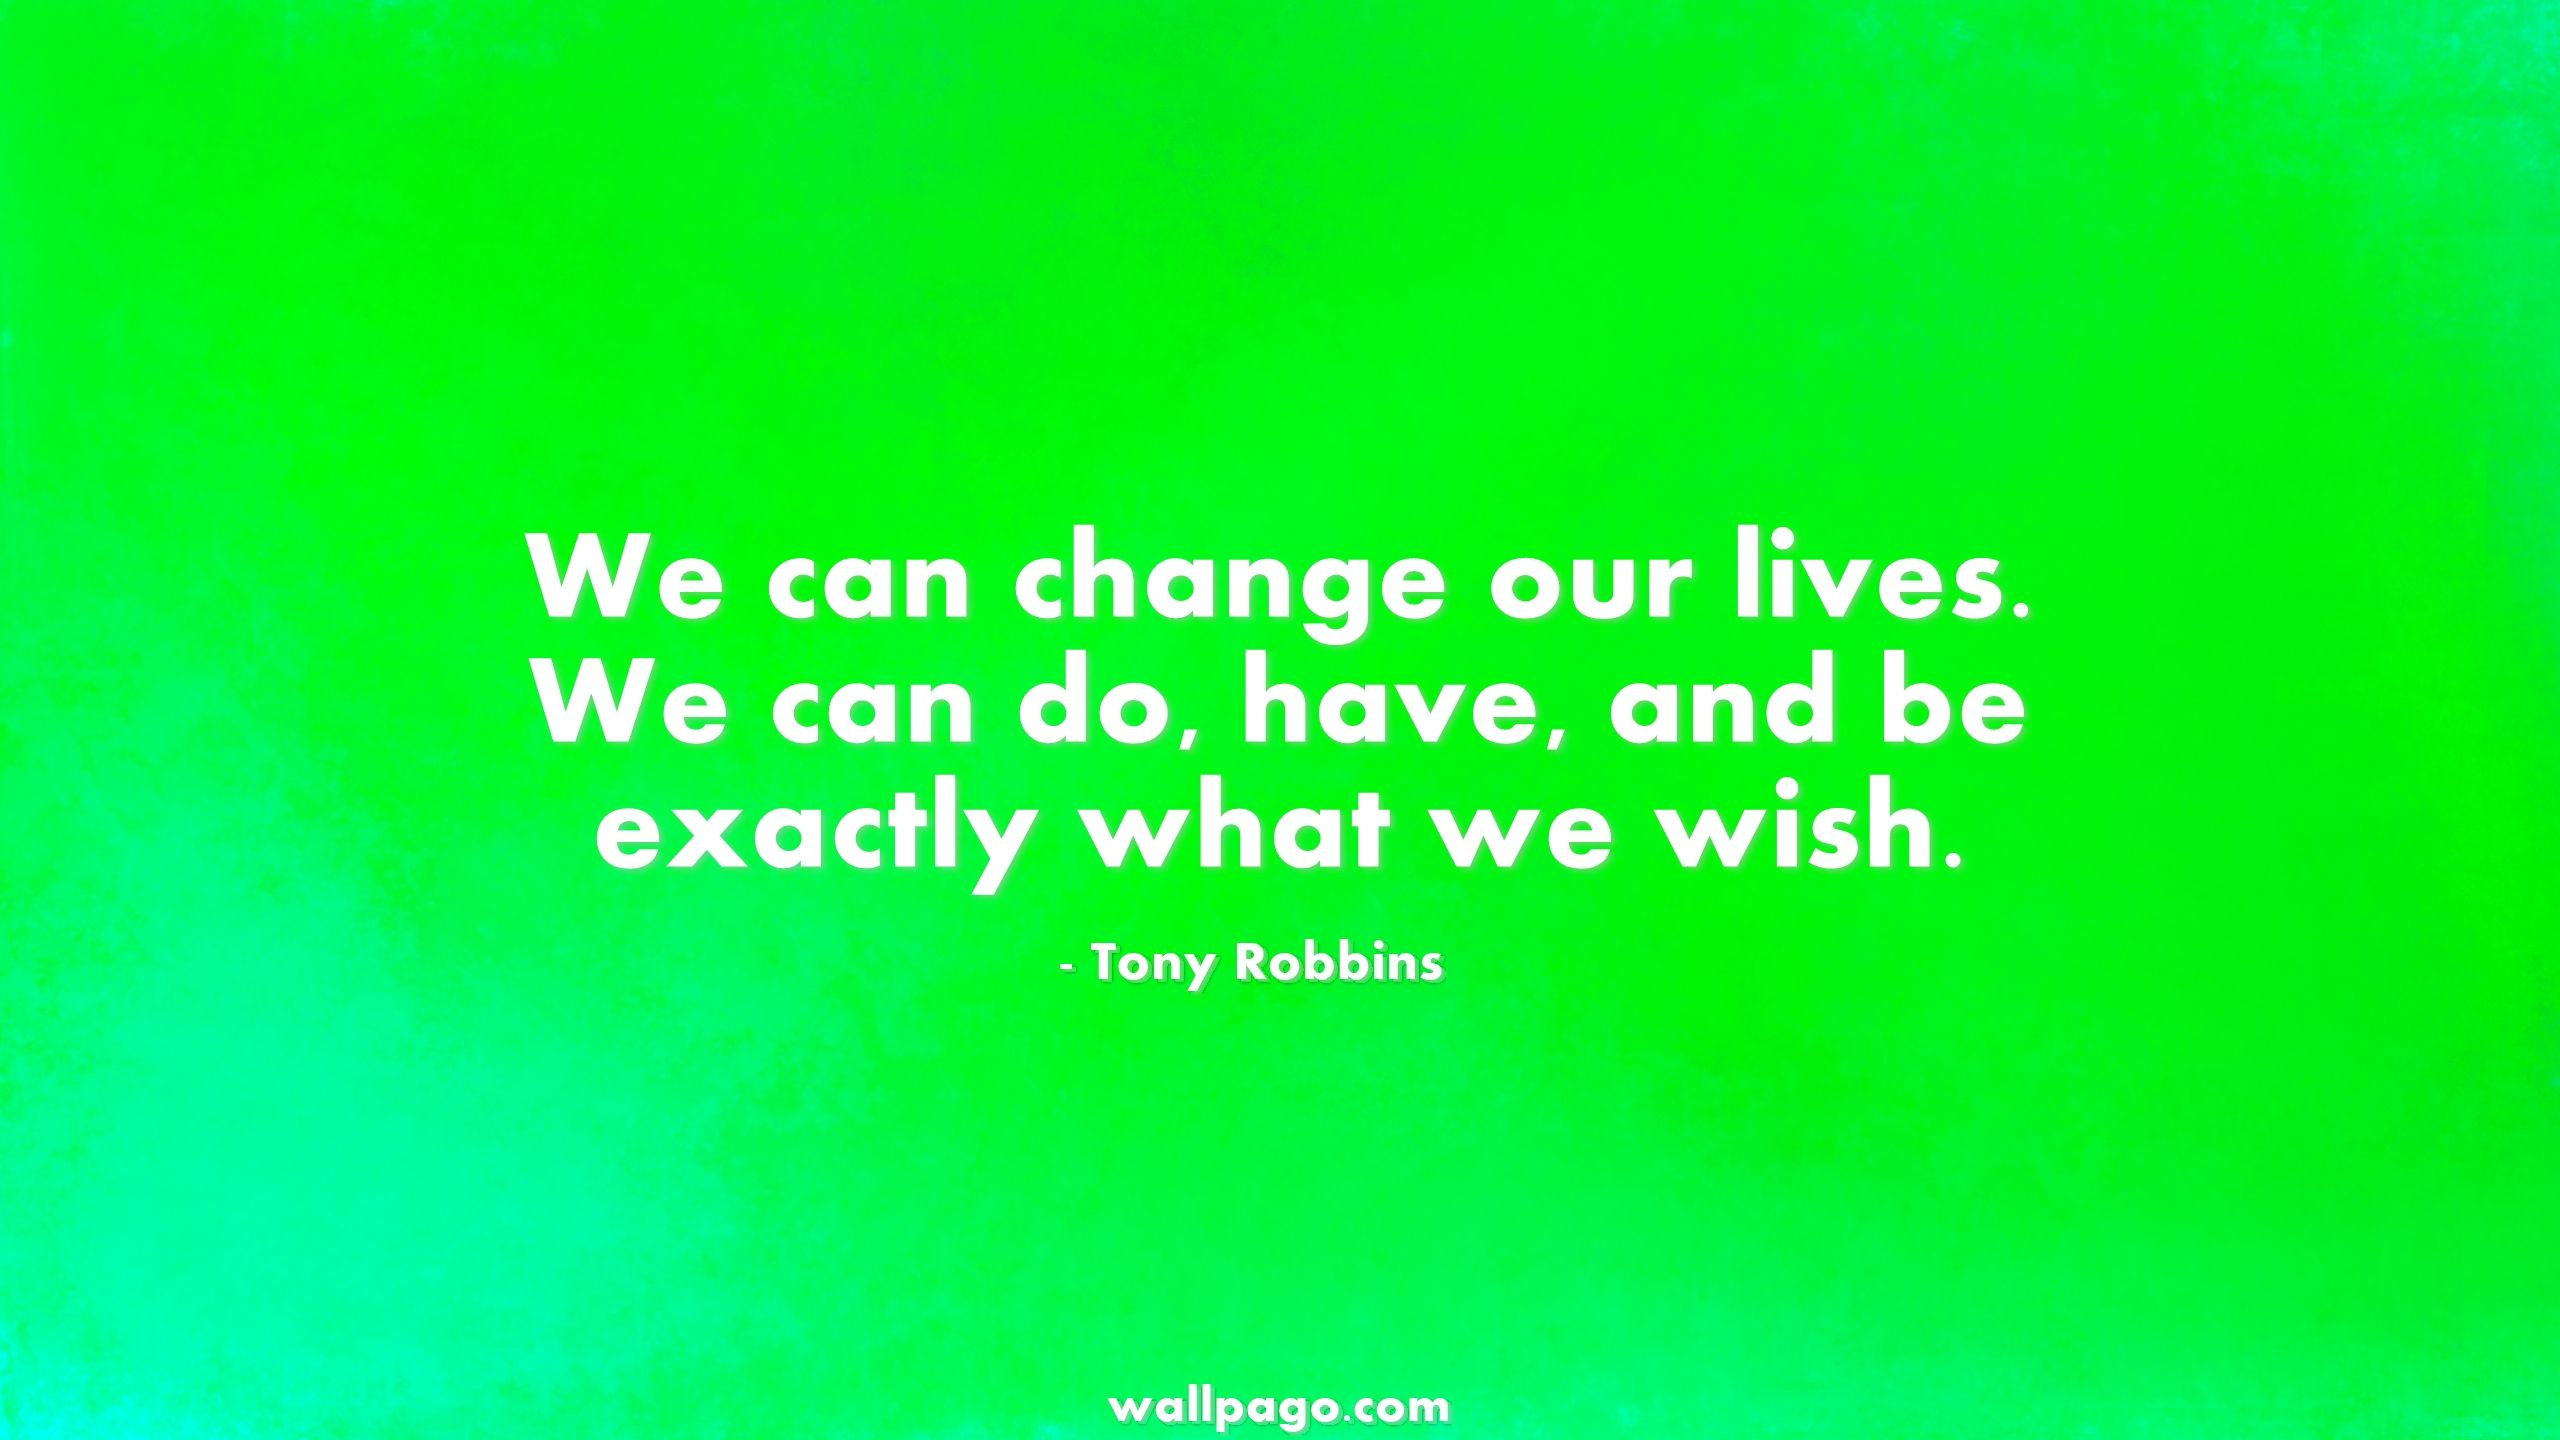 Change our lives inspirational quote - Wallpago | Quotes Wallpapers